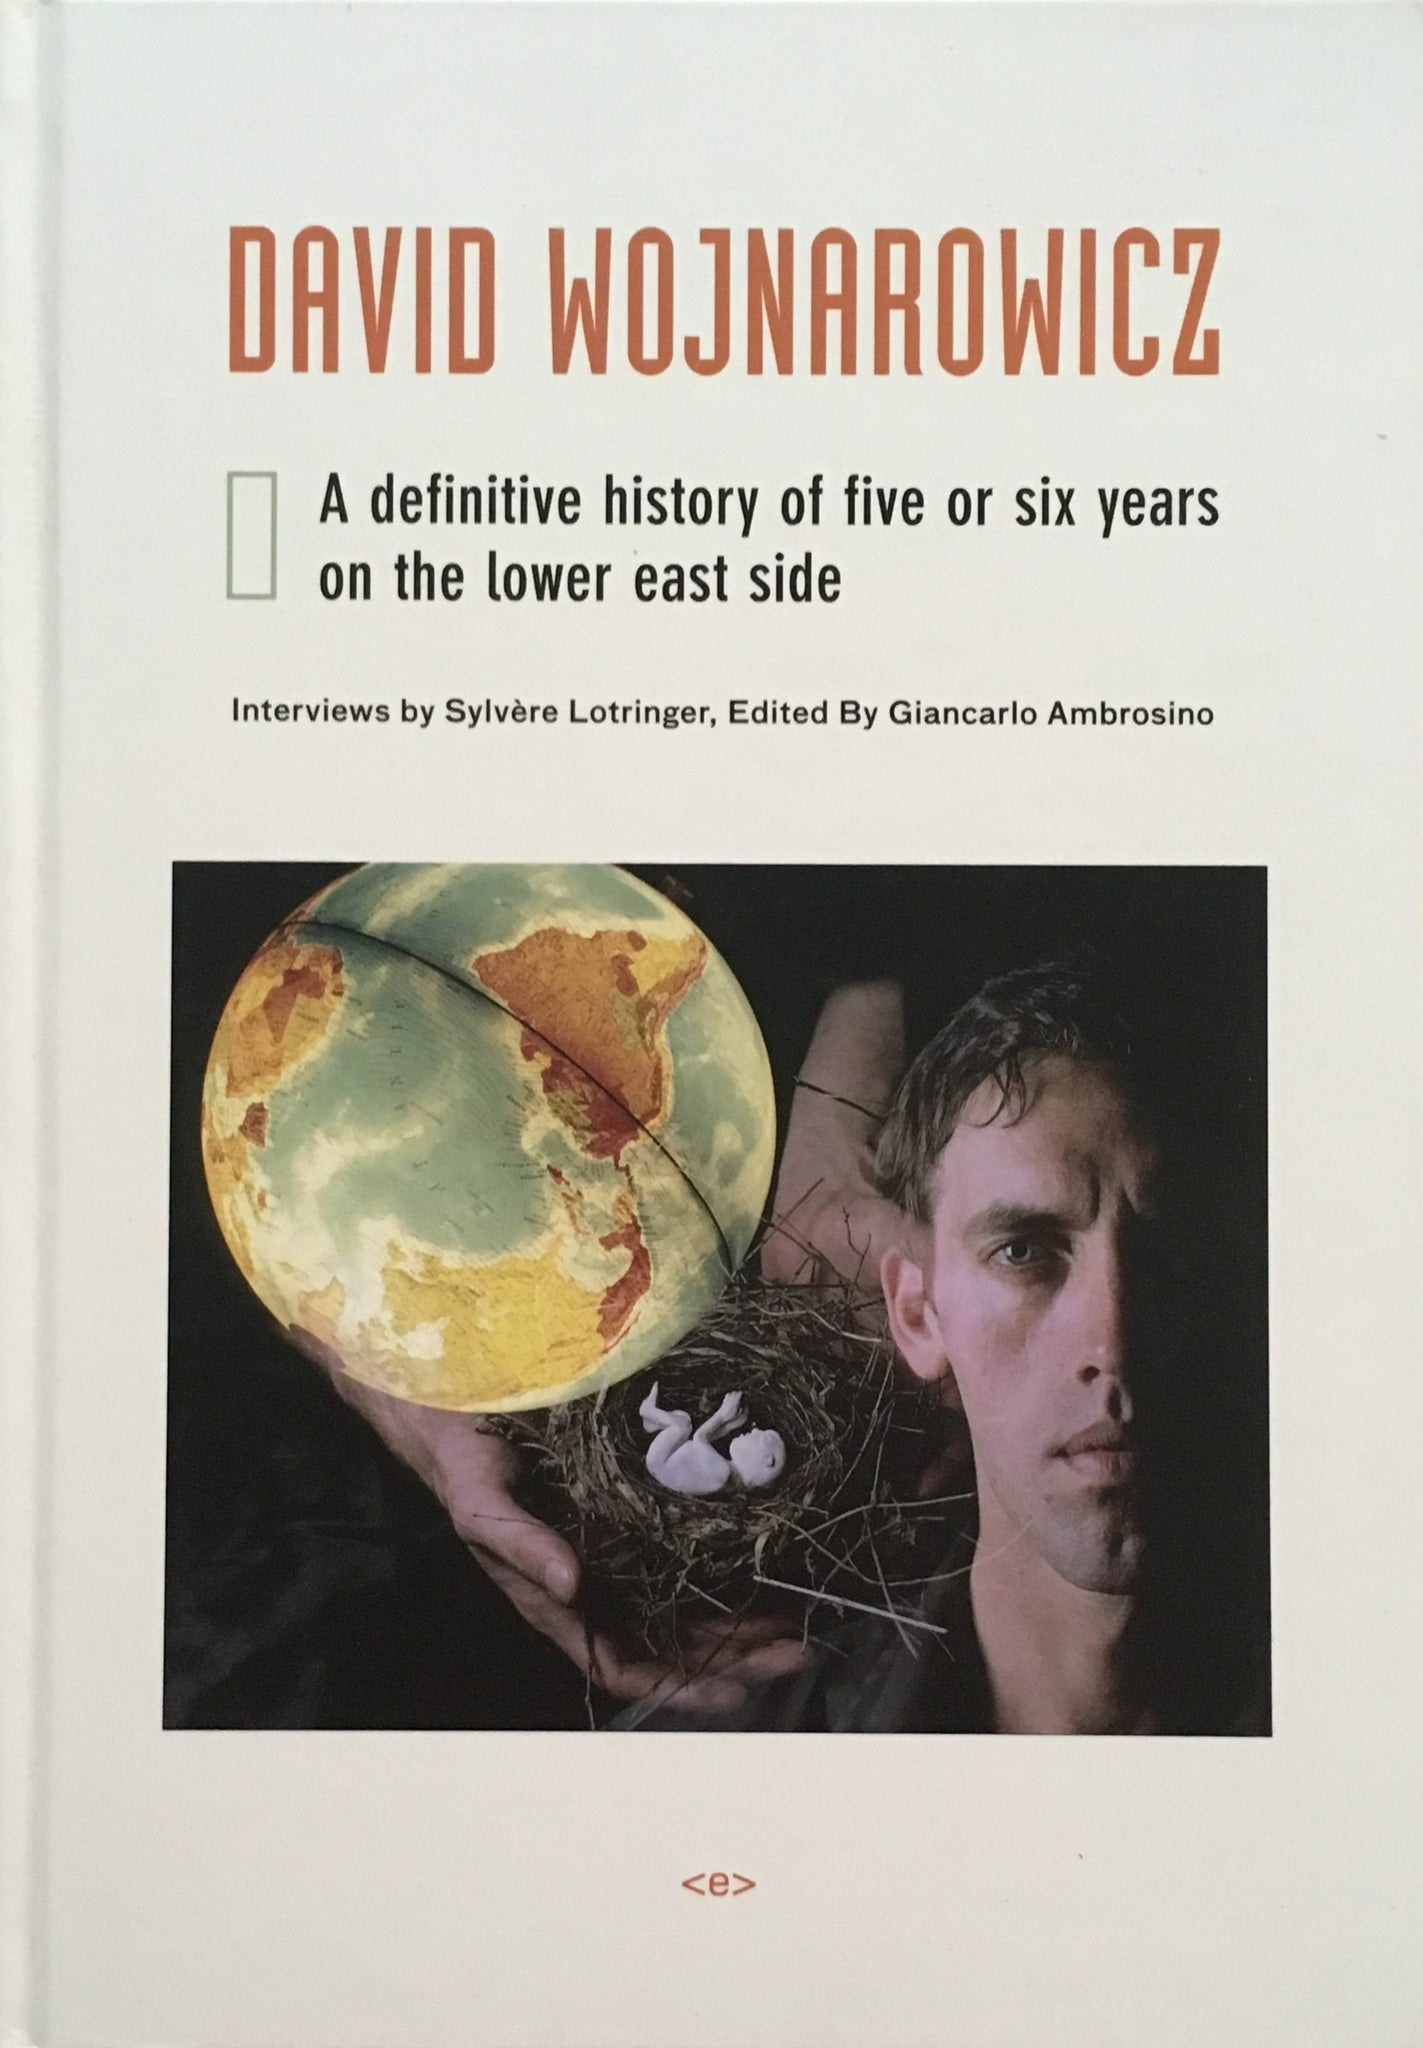 David Wojnarowicz: A definitive history of five or six years on the lower east side - Book at Kavi Gupta Editions